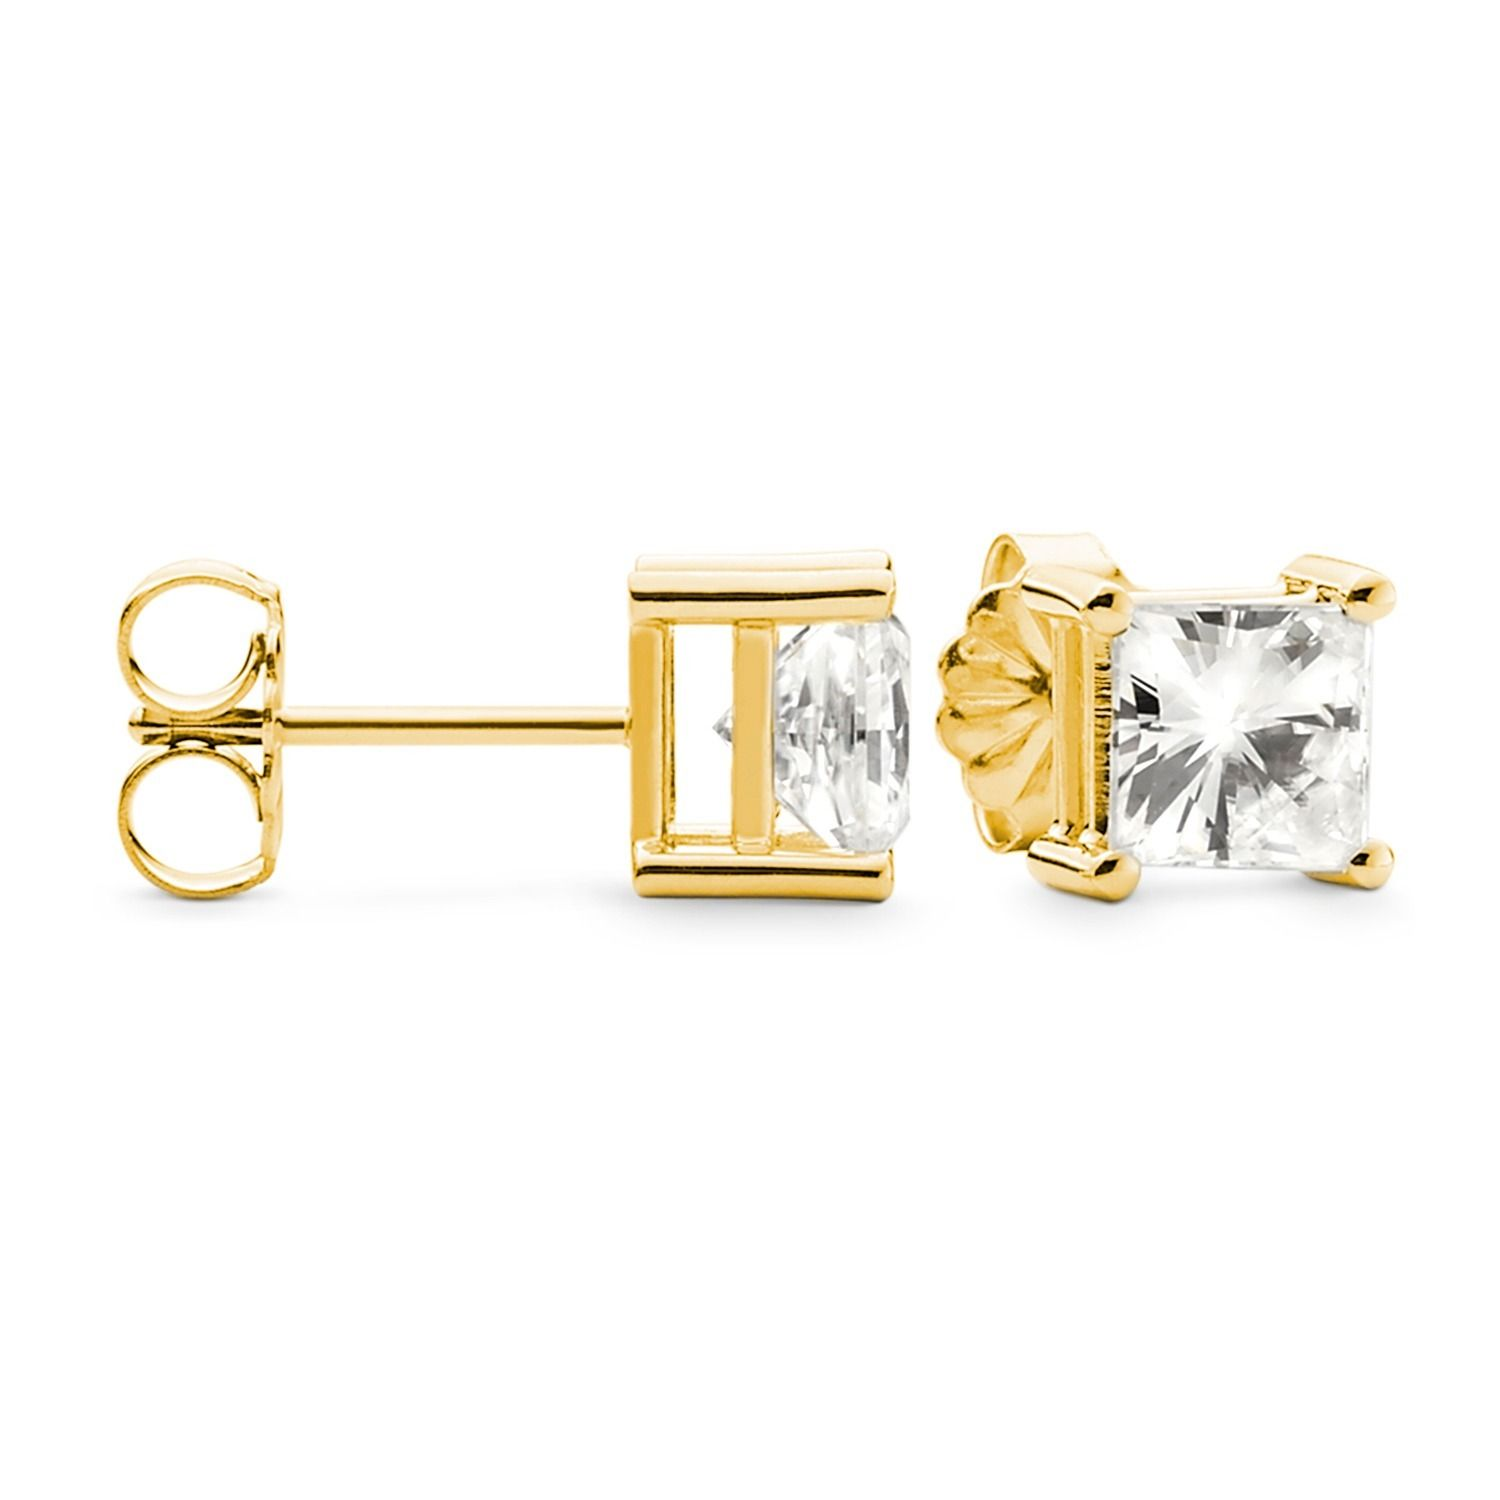 free stud by moissanite pin charles uk arkwright stunning delivery lily colvard earrings one forever